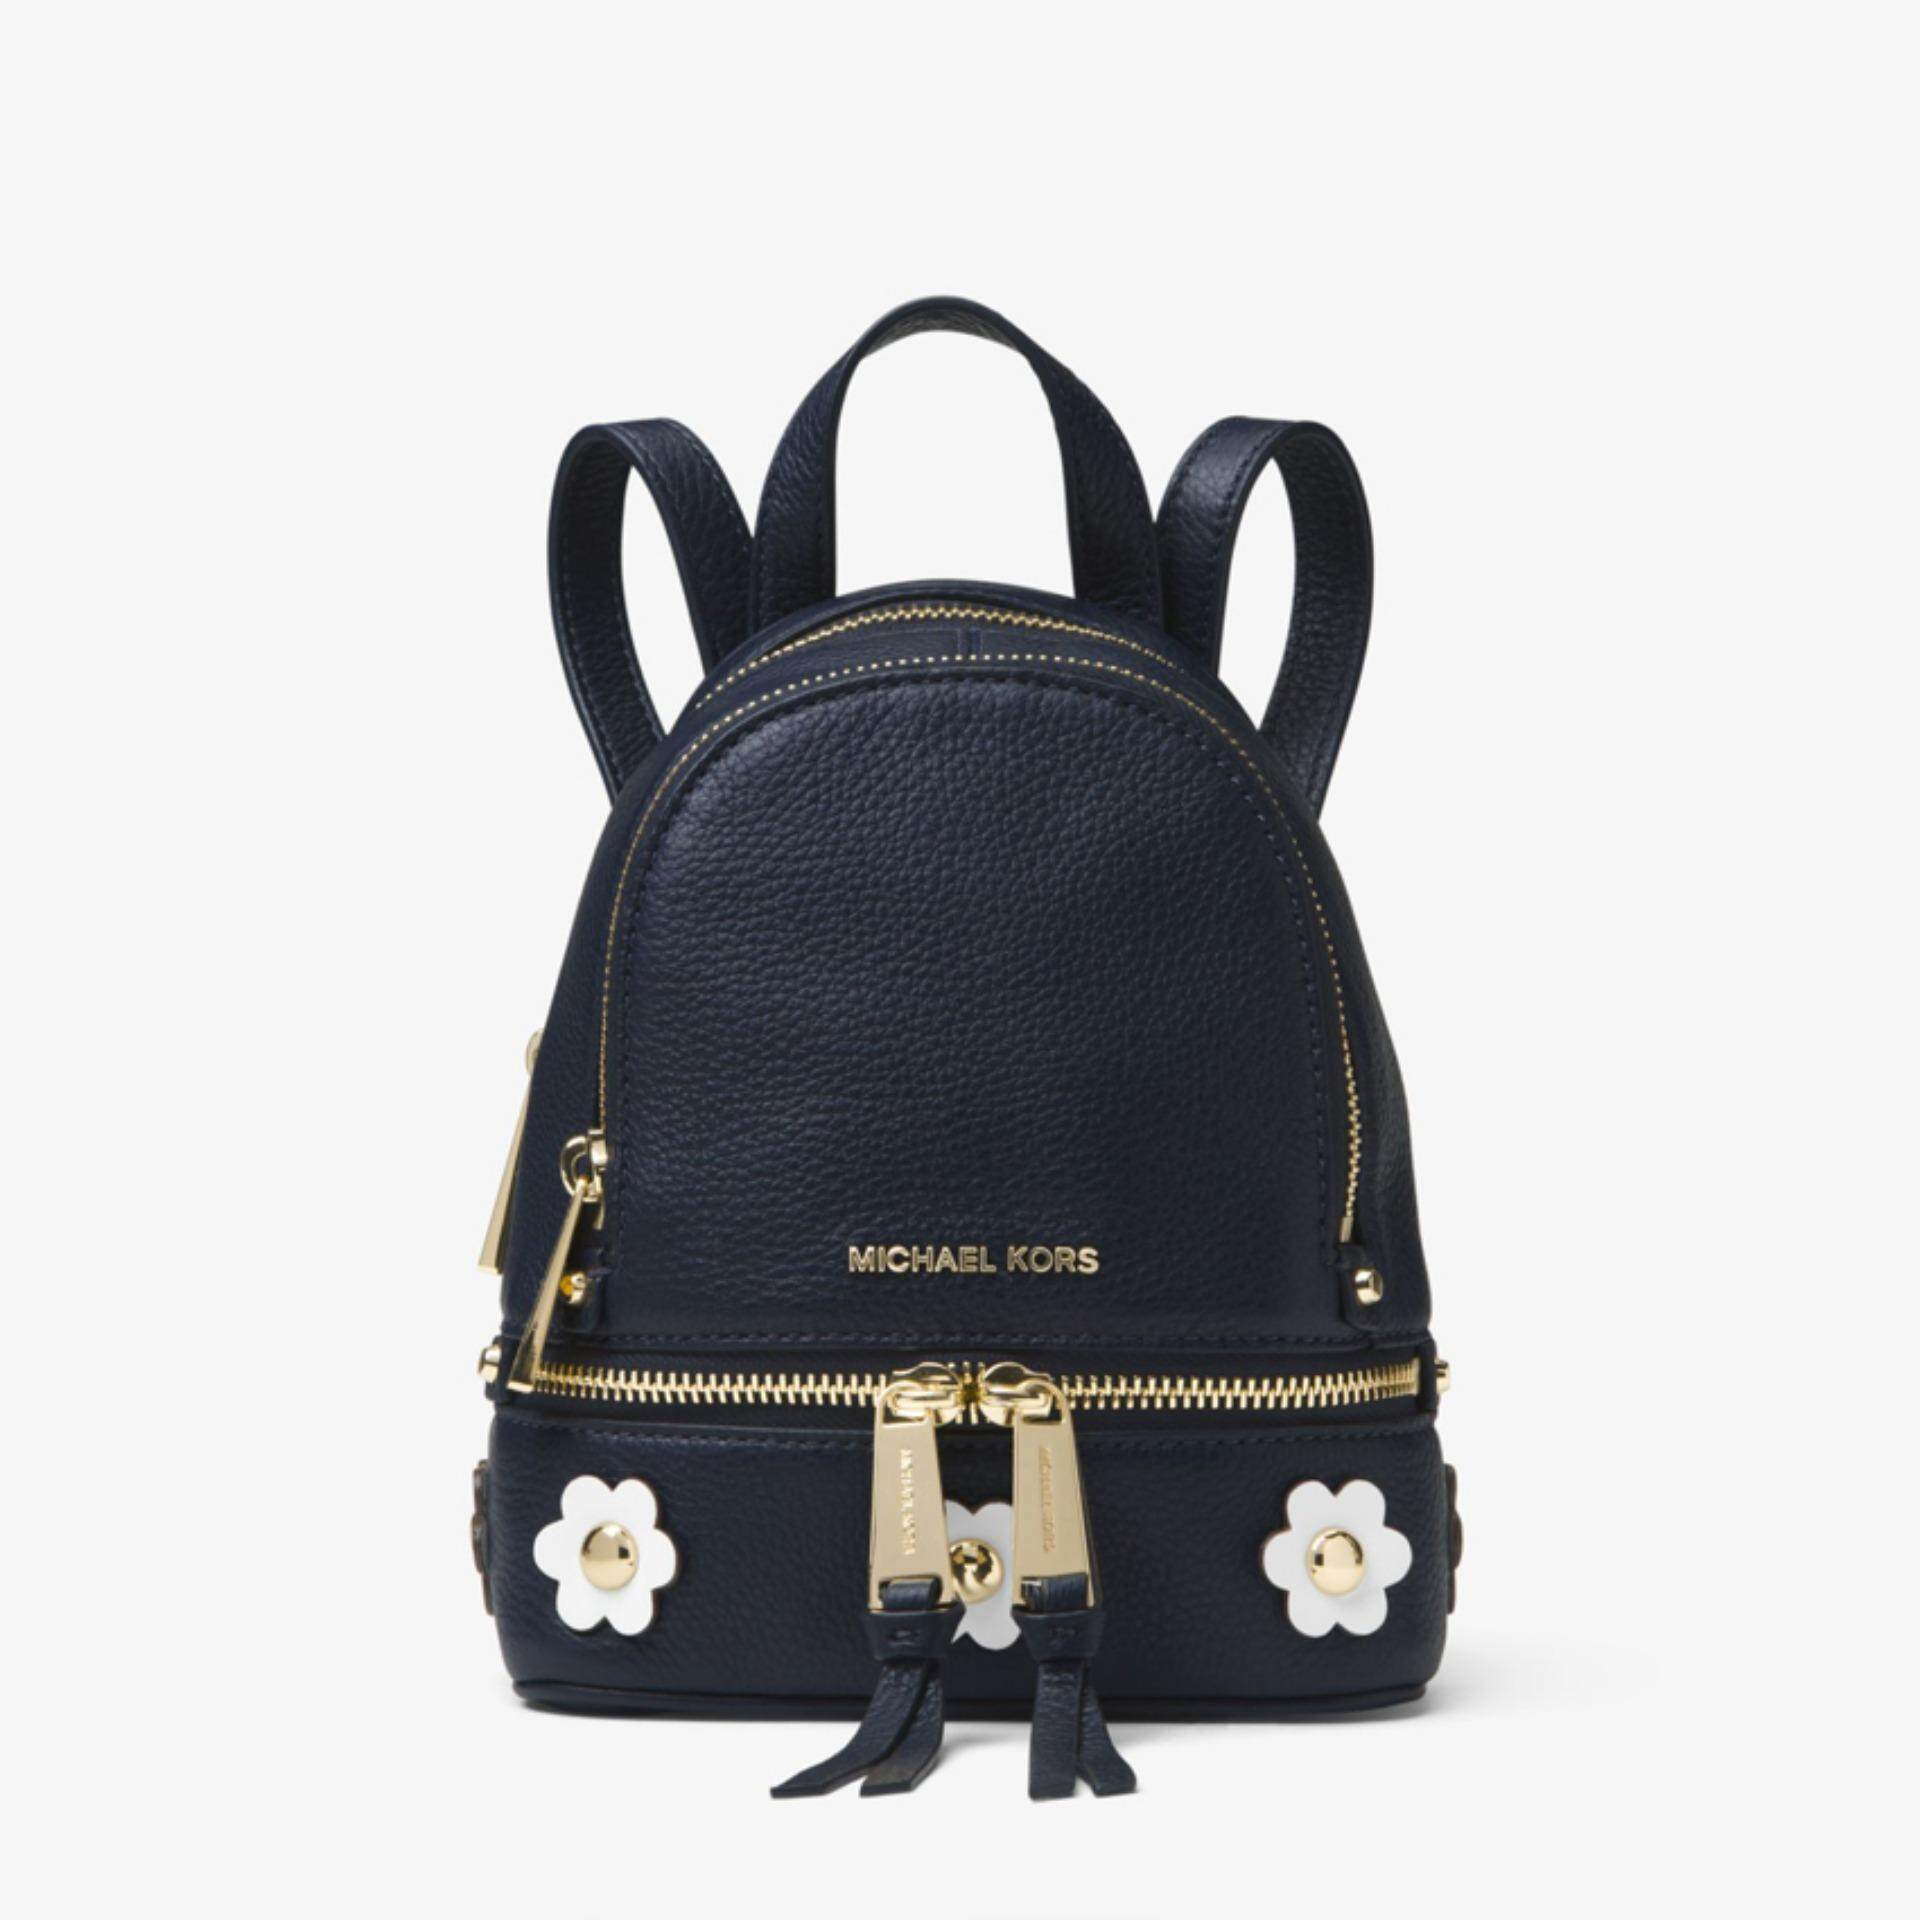 a7250a1695f3 Michael Kors Rhea Mini Floral Appliqué Leather Backpack - Navy Blue